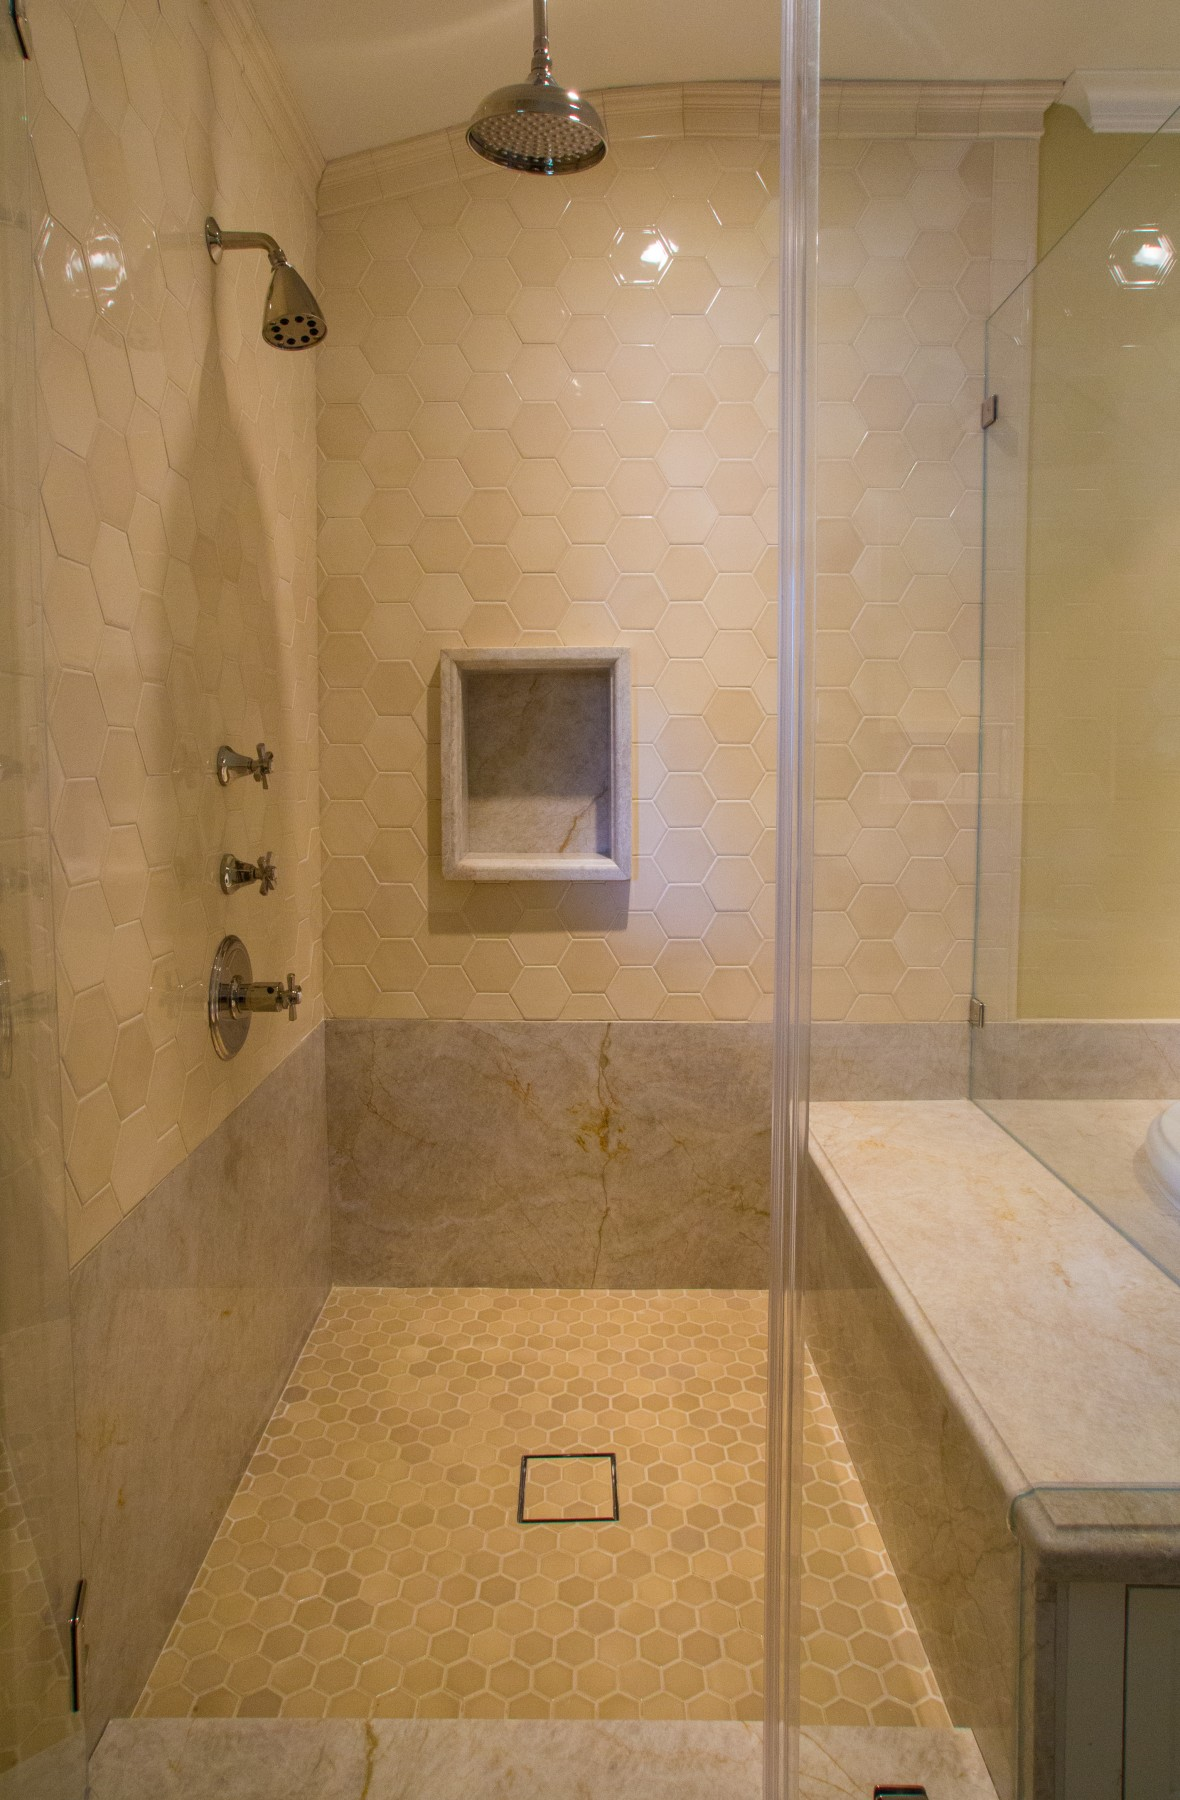 A frameless glass shower with full bench and rain shower head.